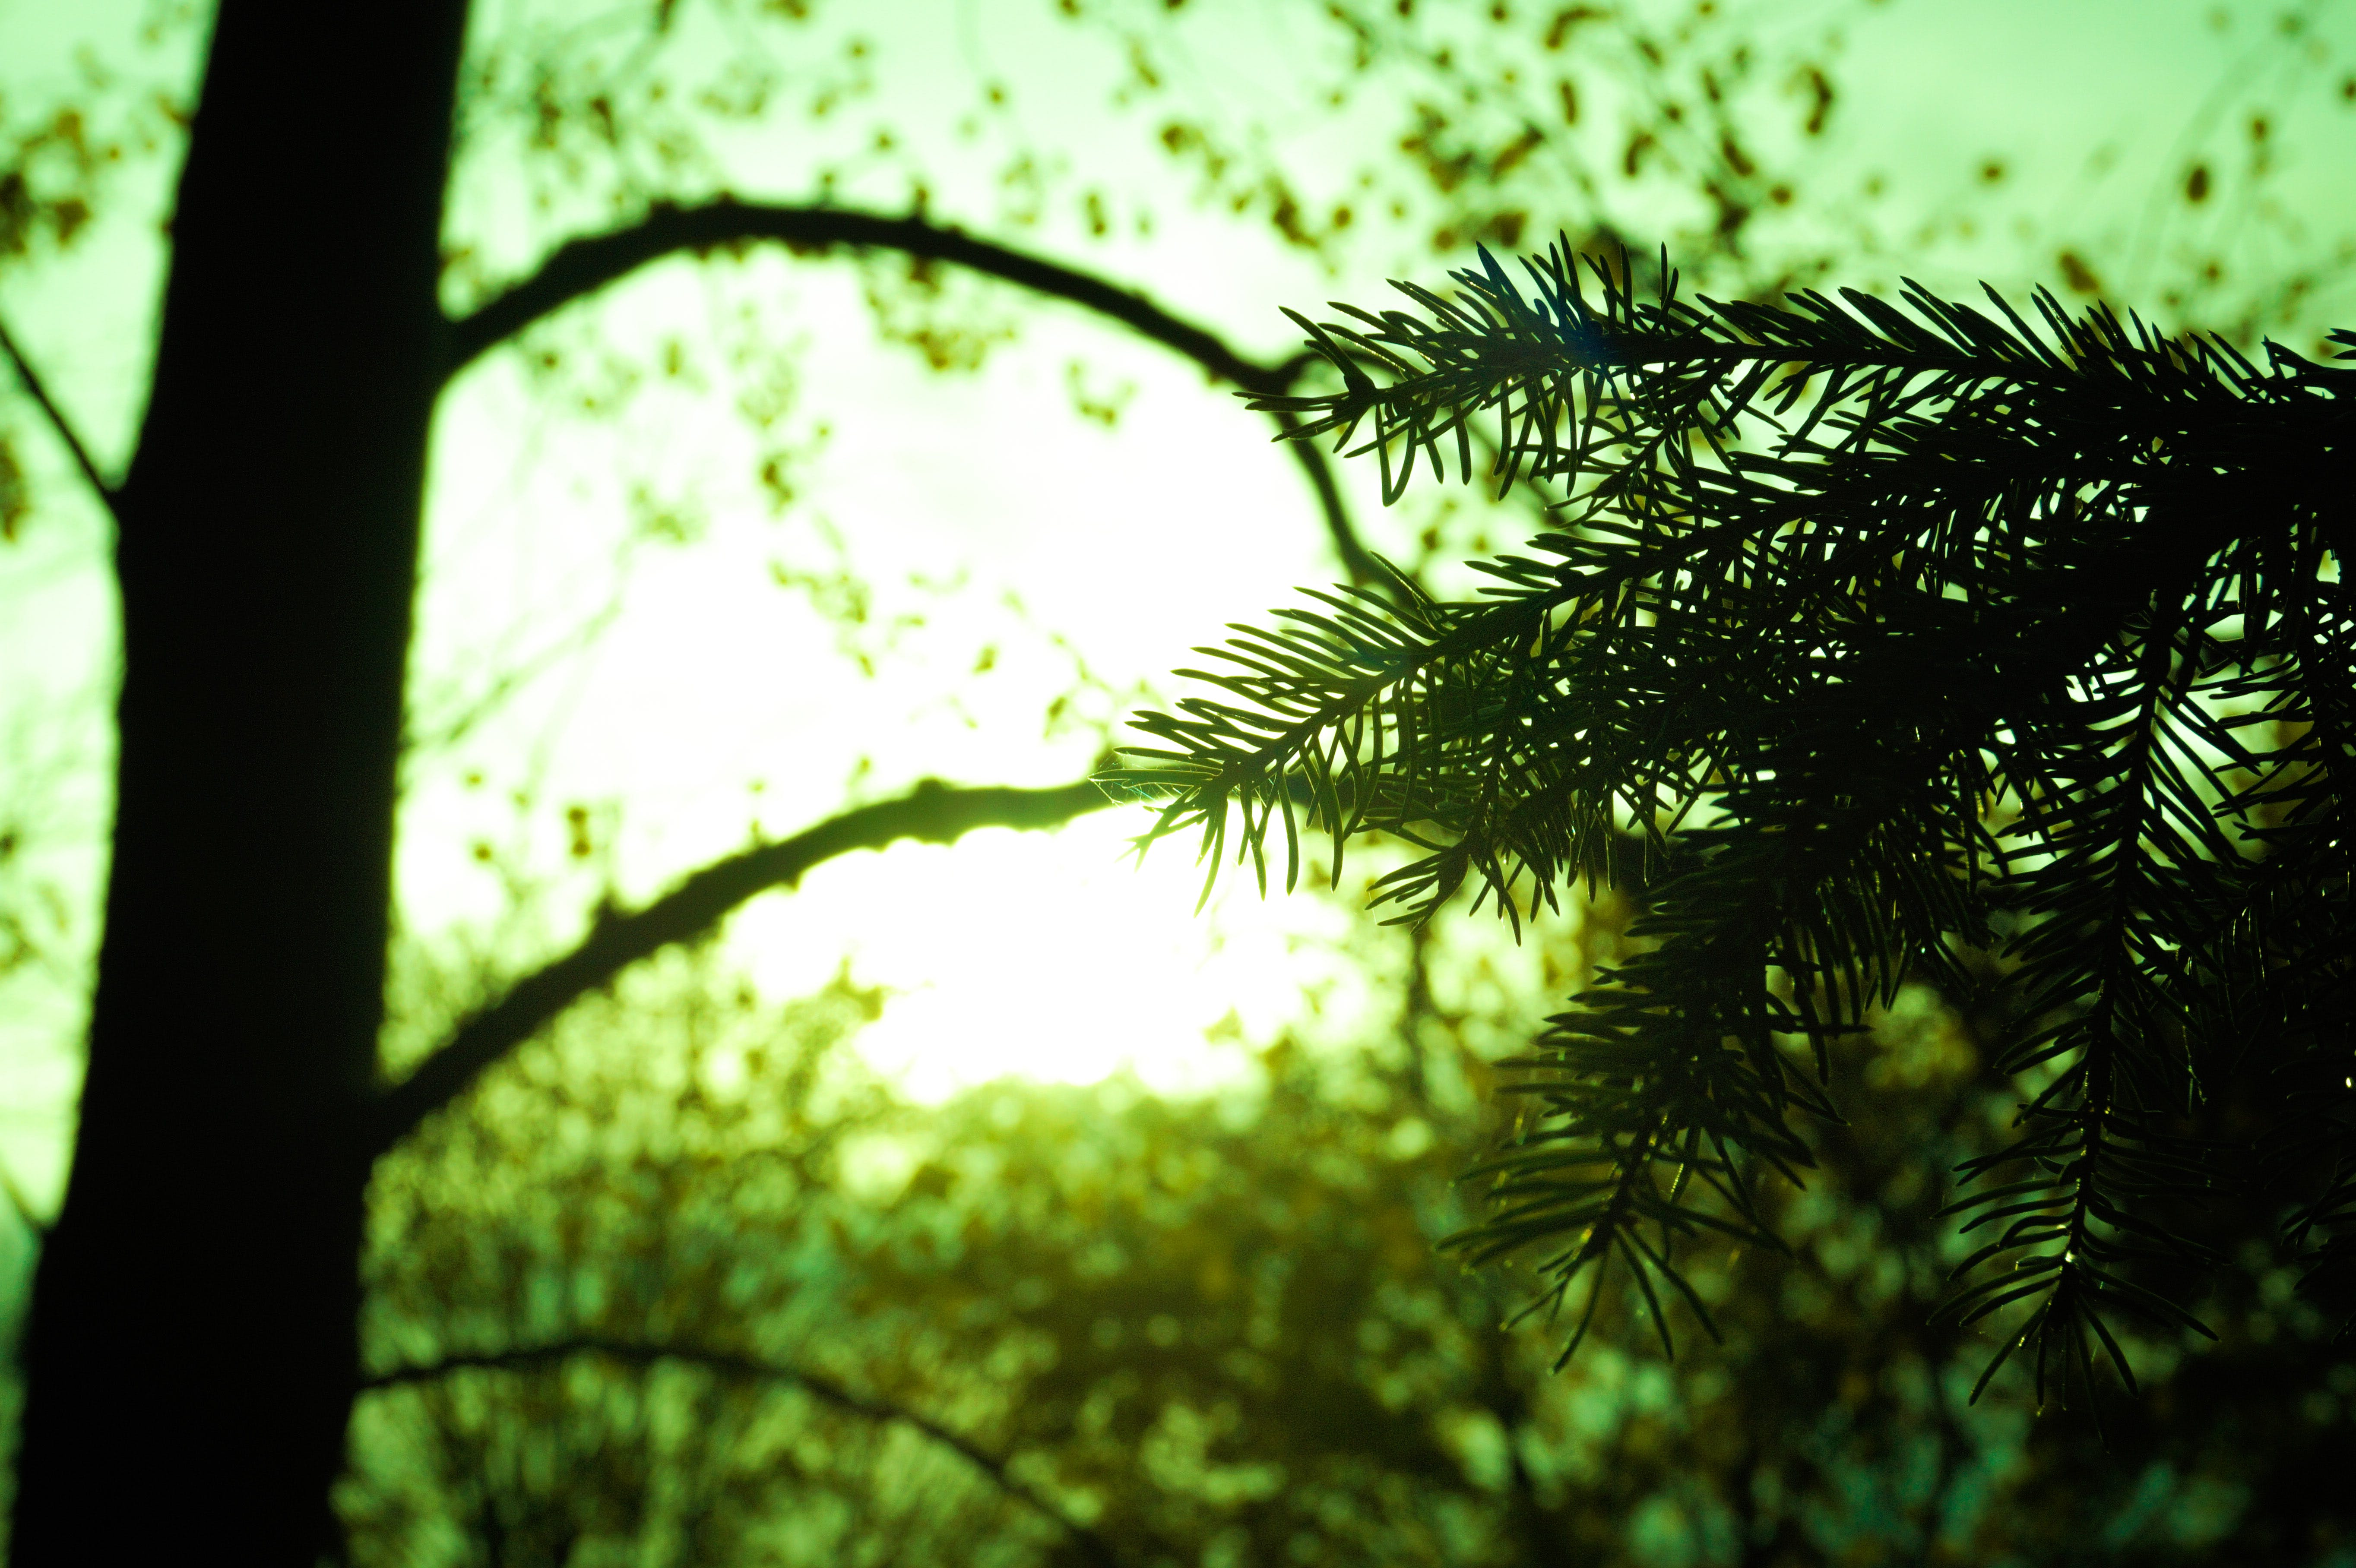 Silhouette of Tree Leaf on Green Background